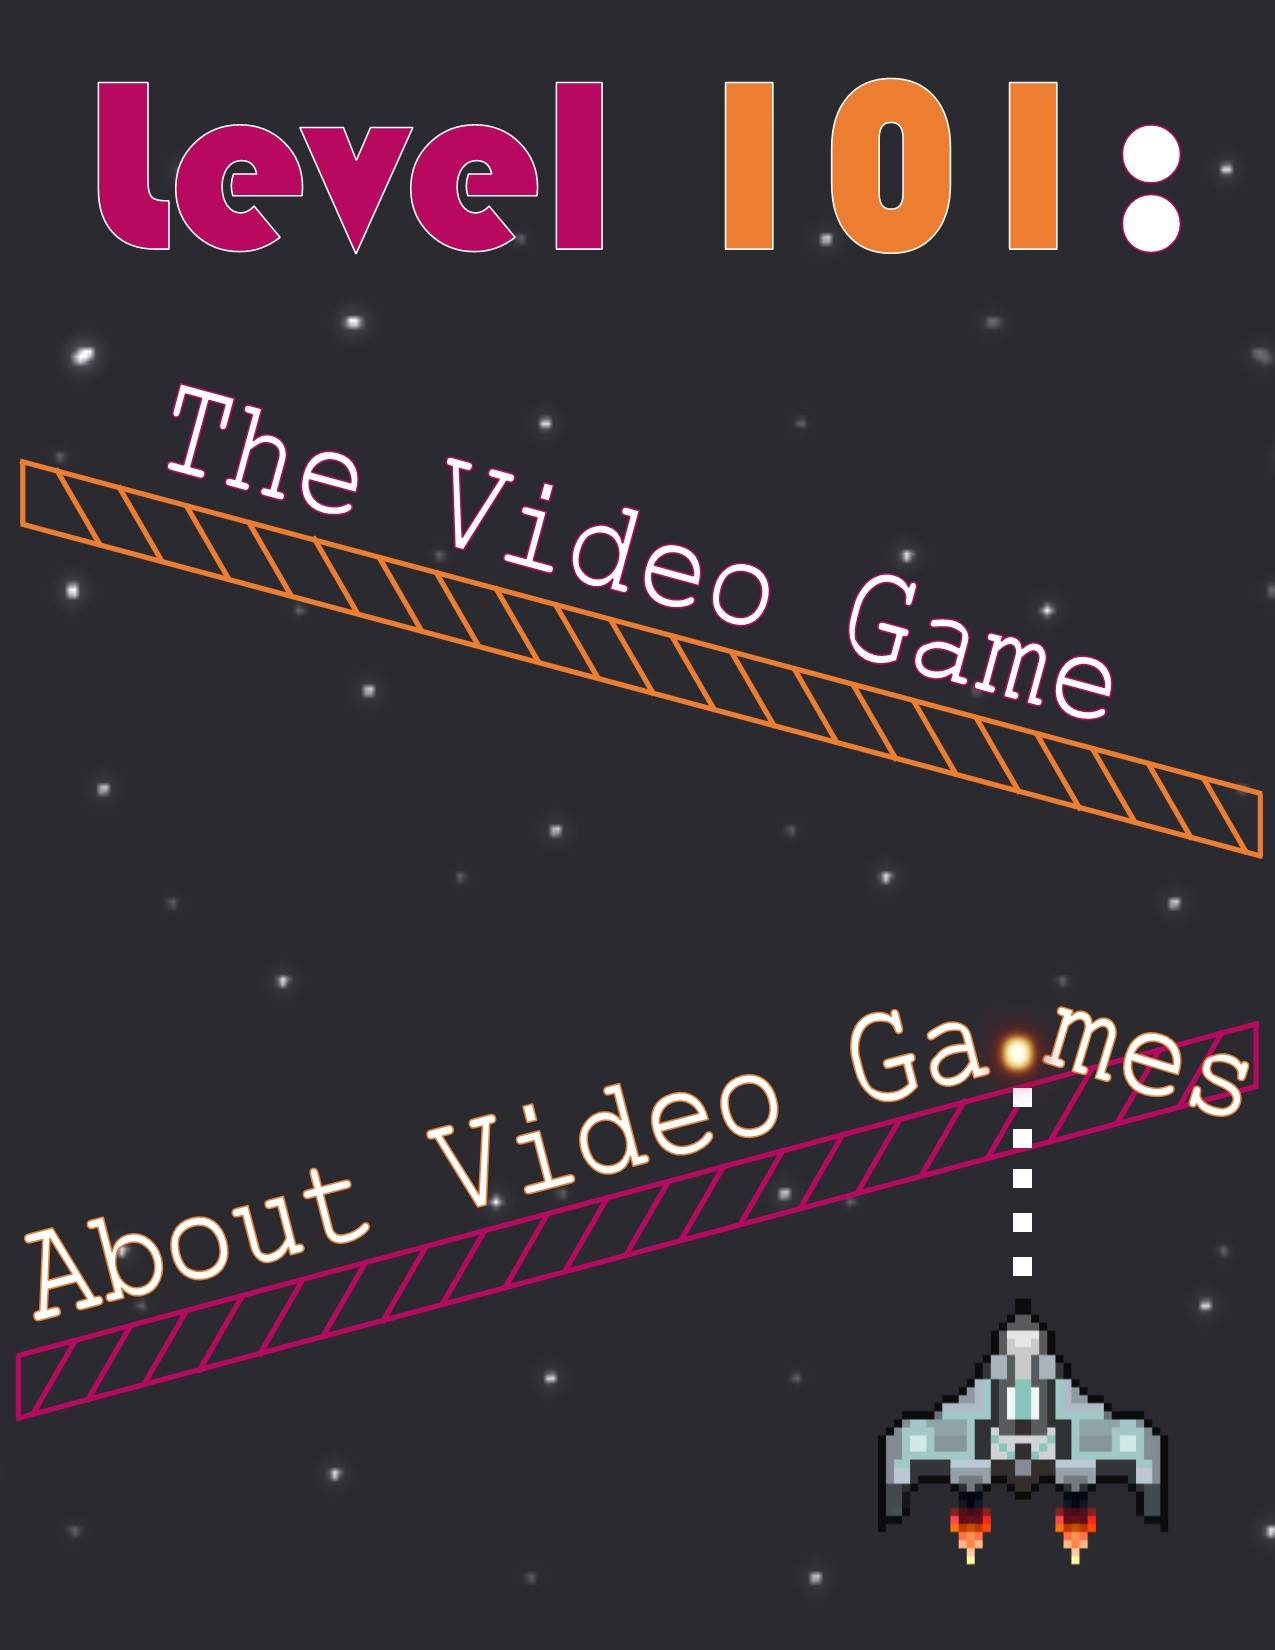 Black space background with words Level 101: The Video Game and About Video Games in pink and orange with spaceship in bottom right corner